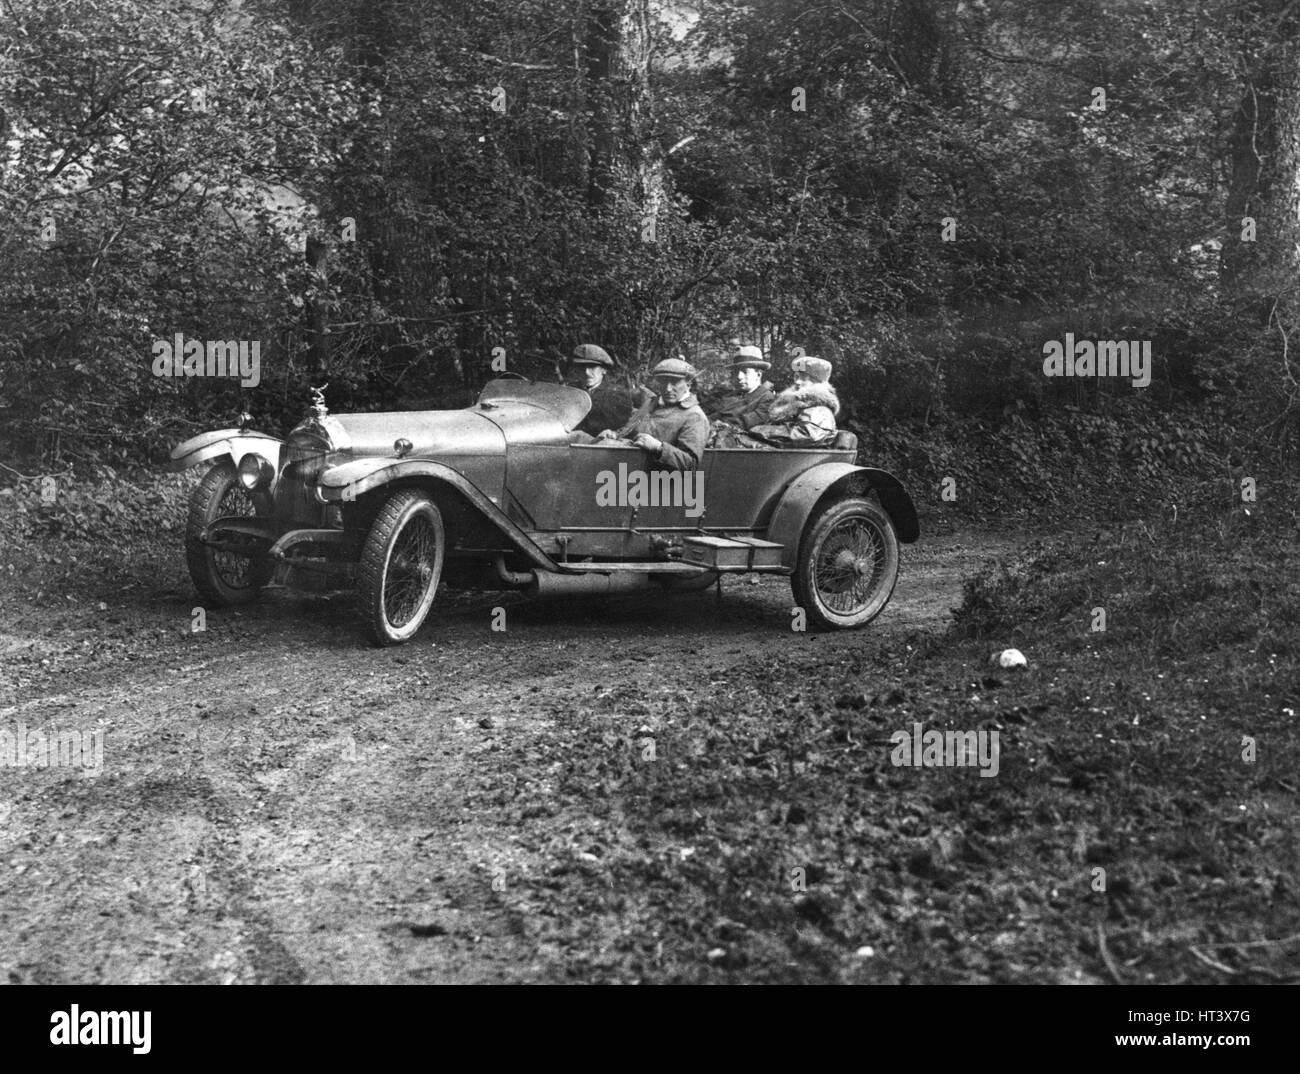 1920 Straker Squire 24-80 hp Artist: Unknown. - Stock Image